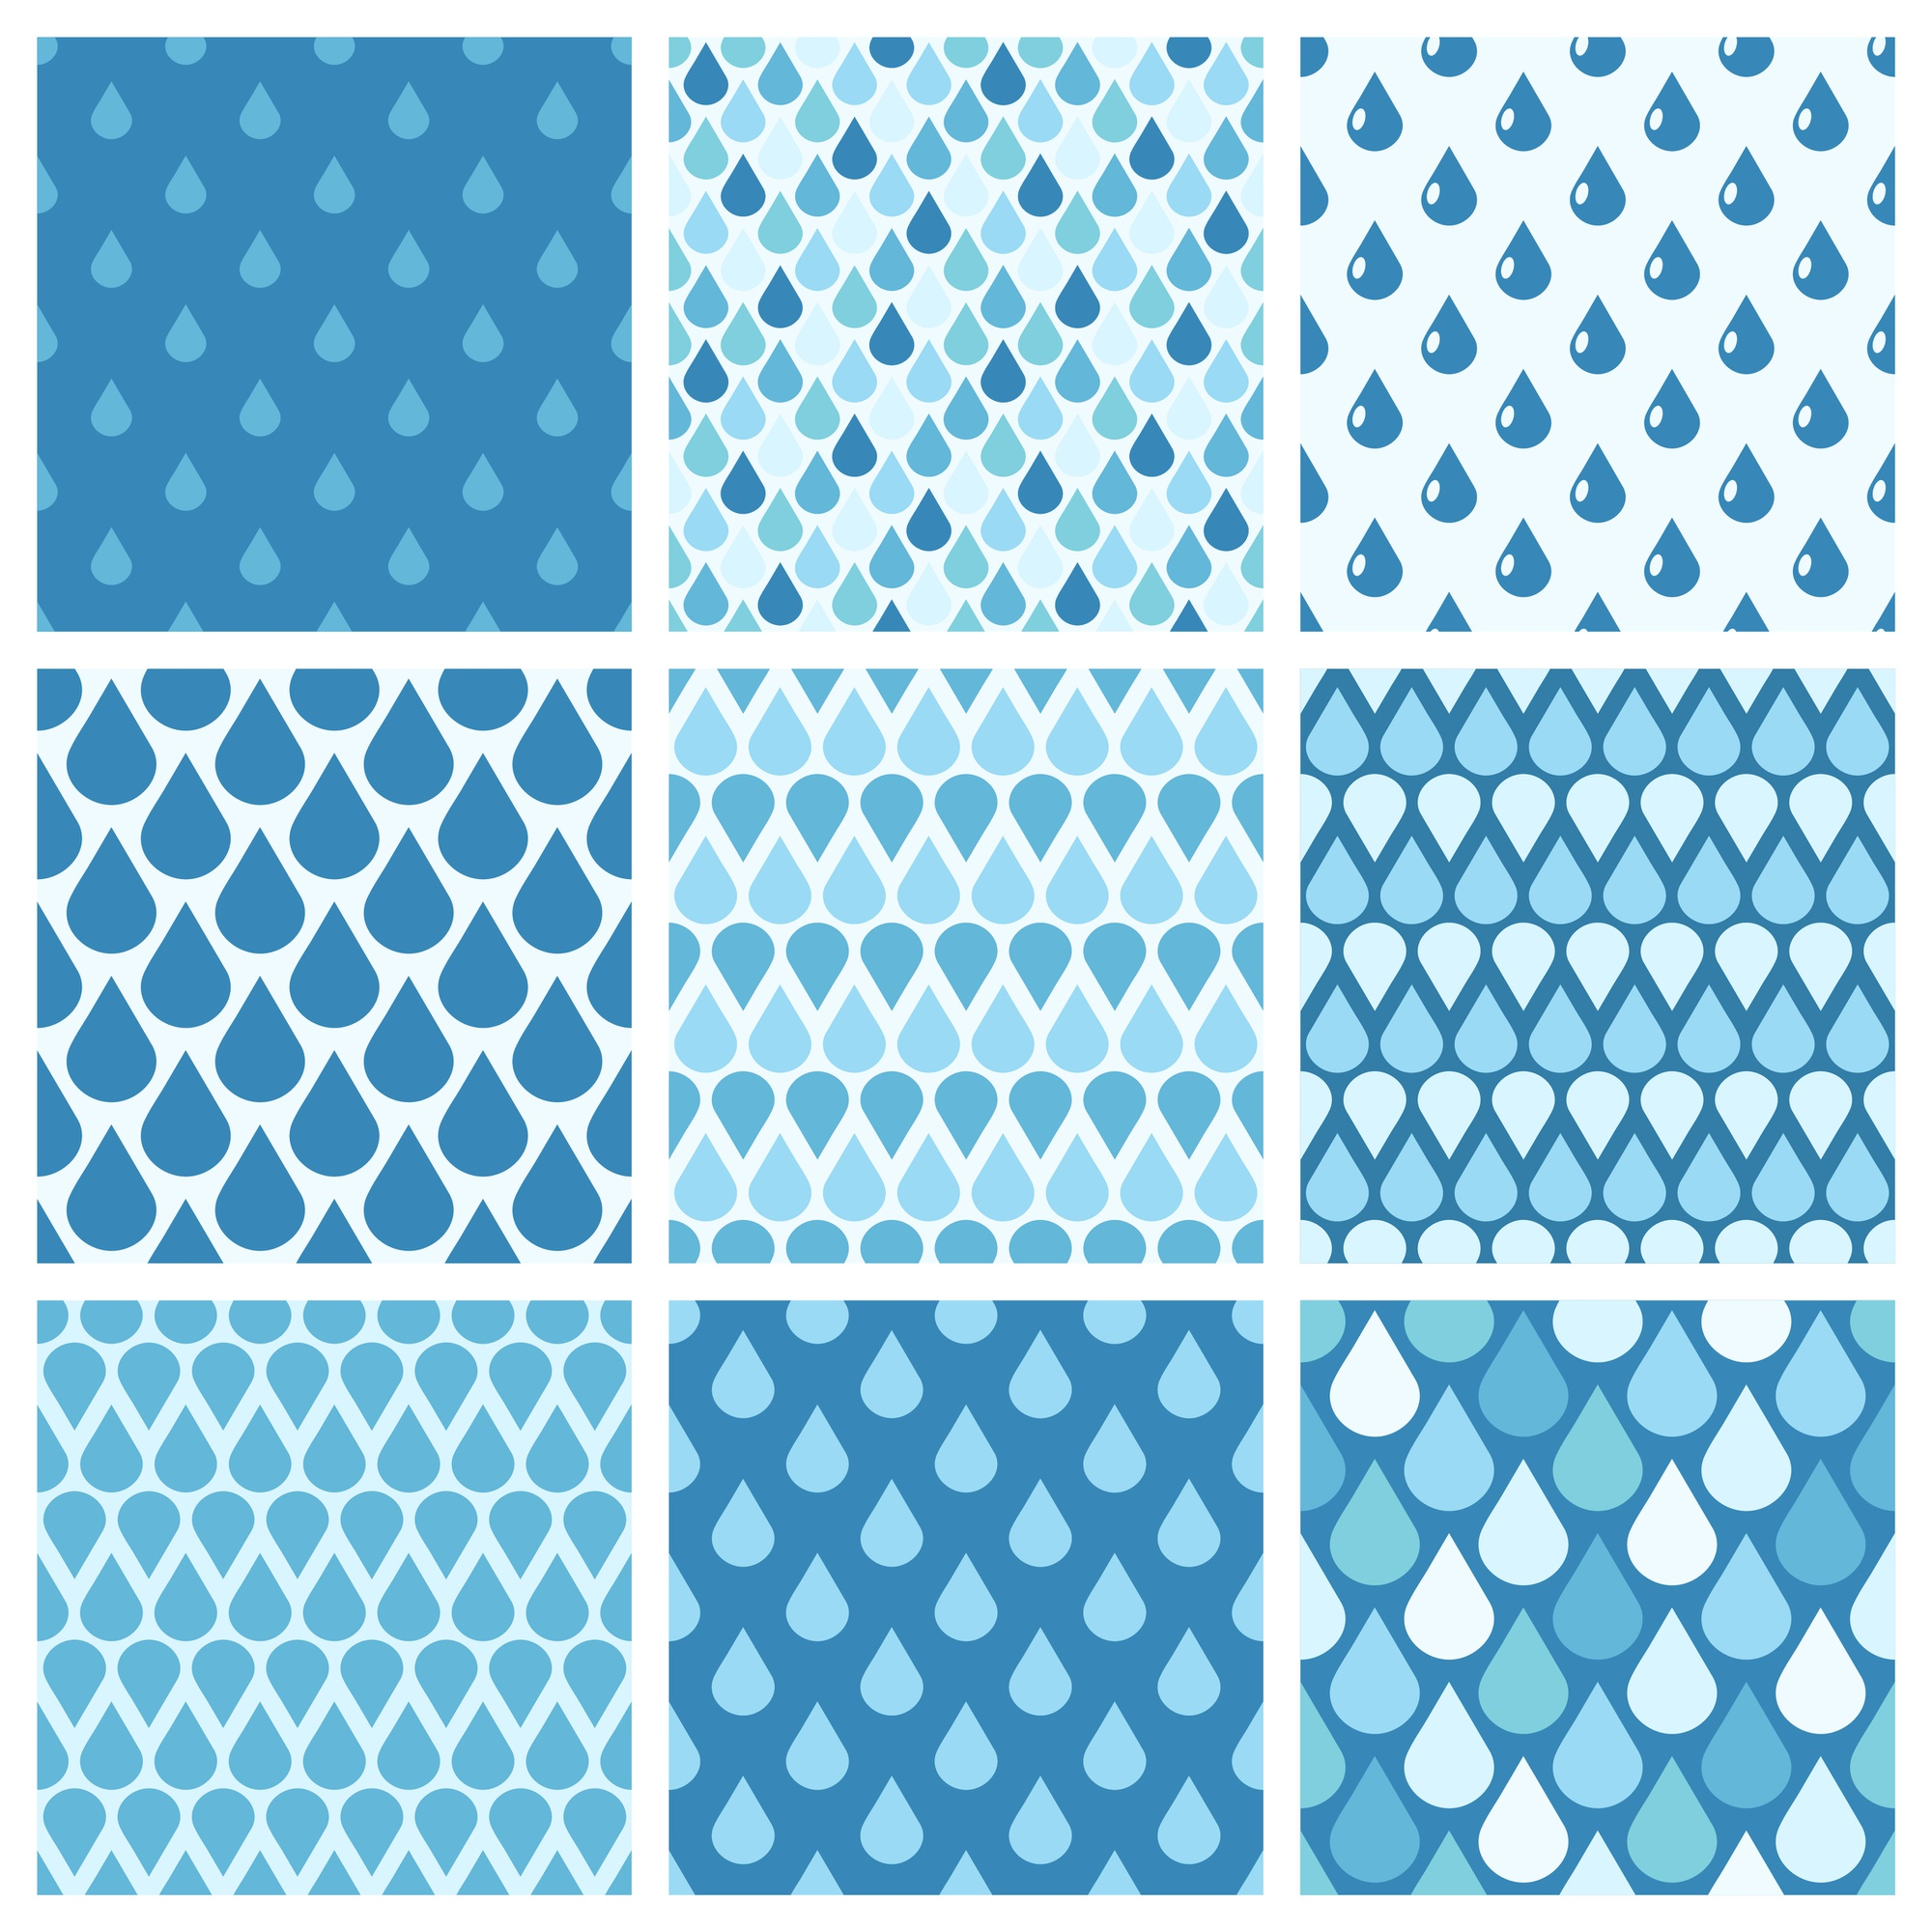 Set of blue vector water drops seamless patterns